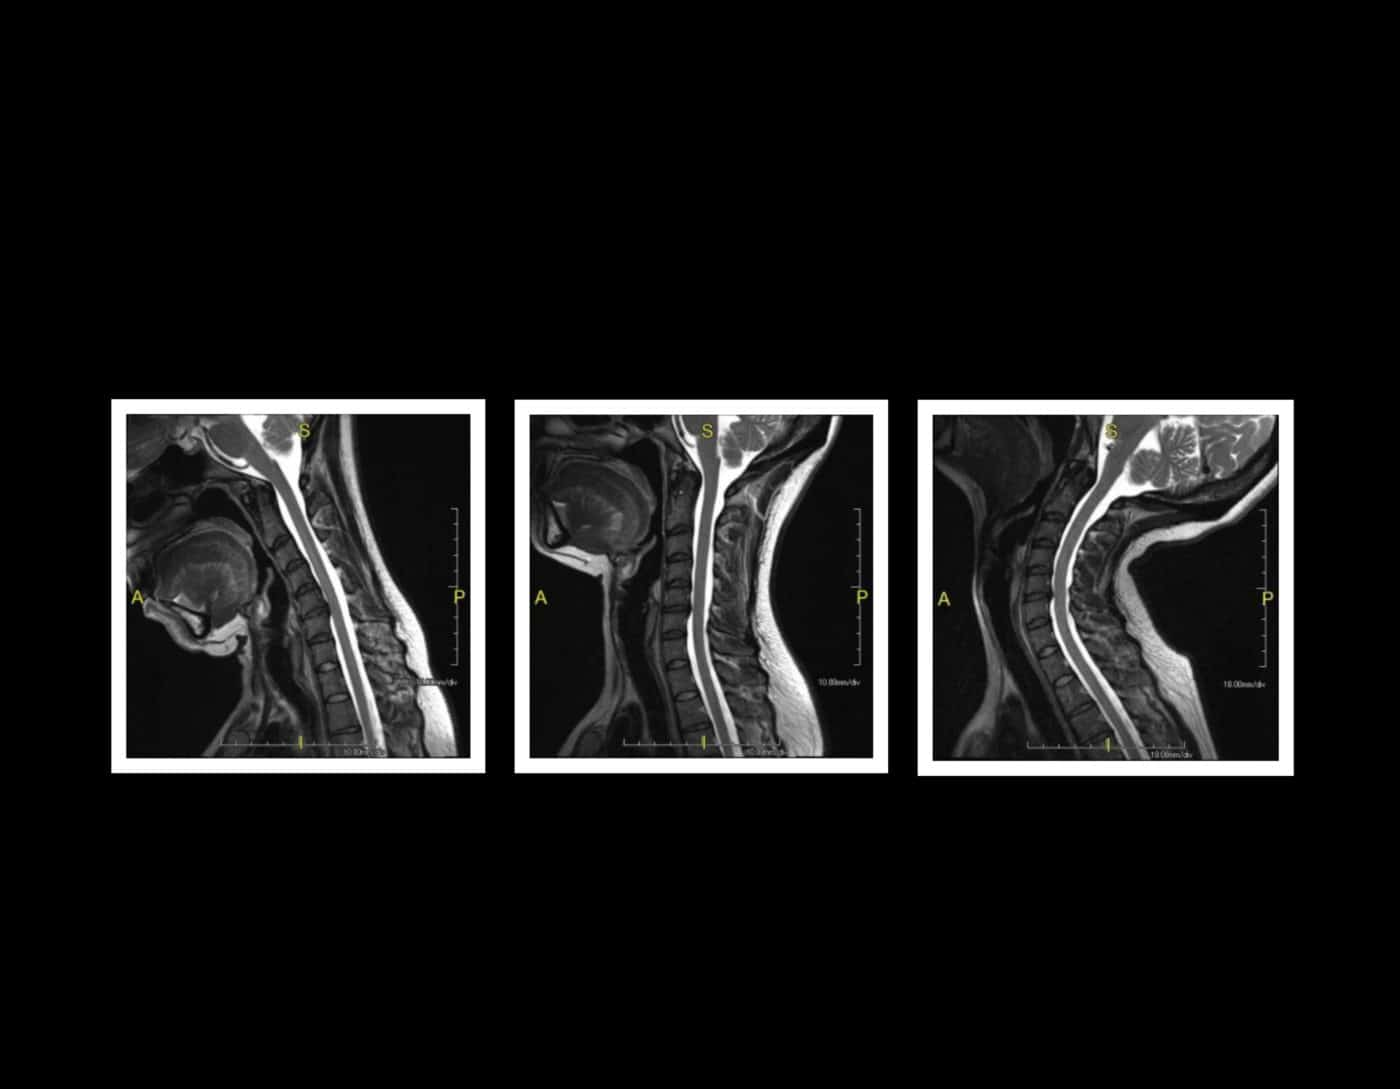 Dynamic (Animated) 3T MRI